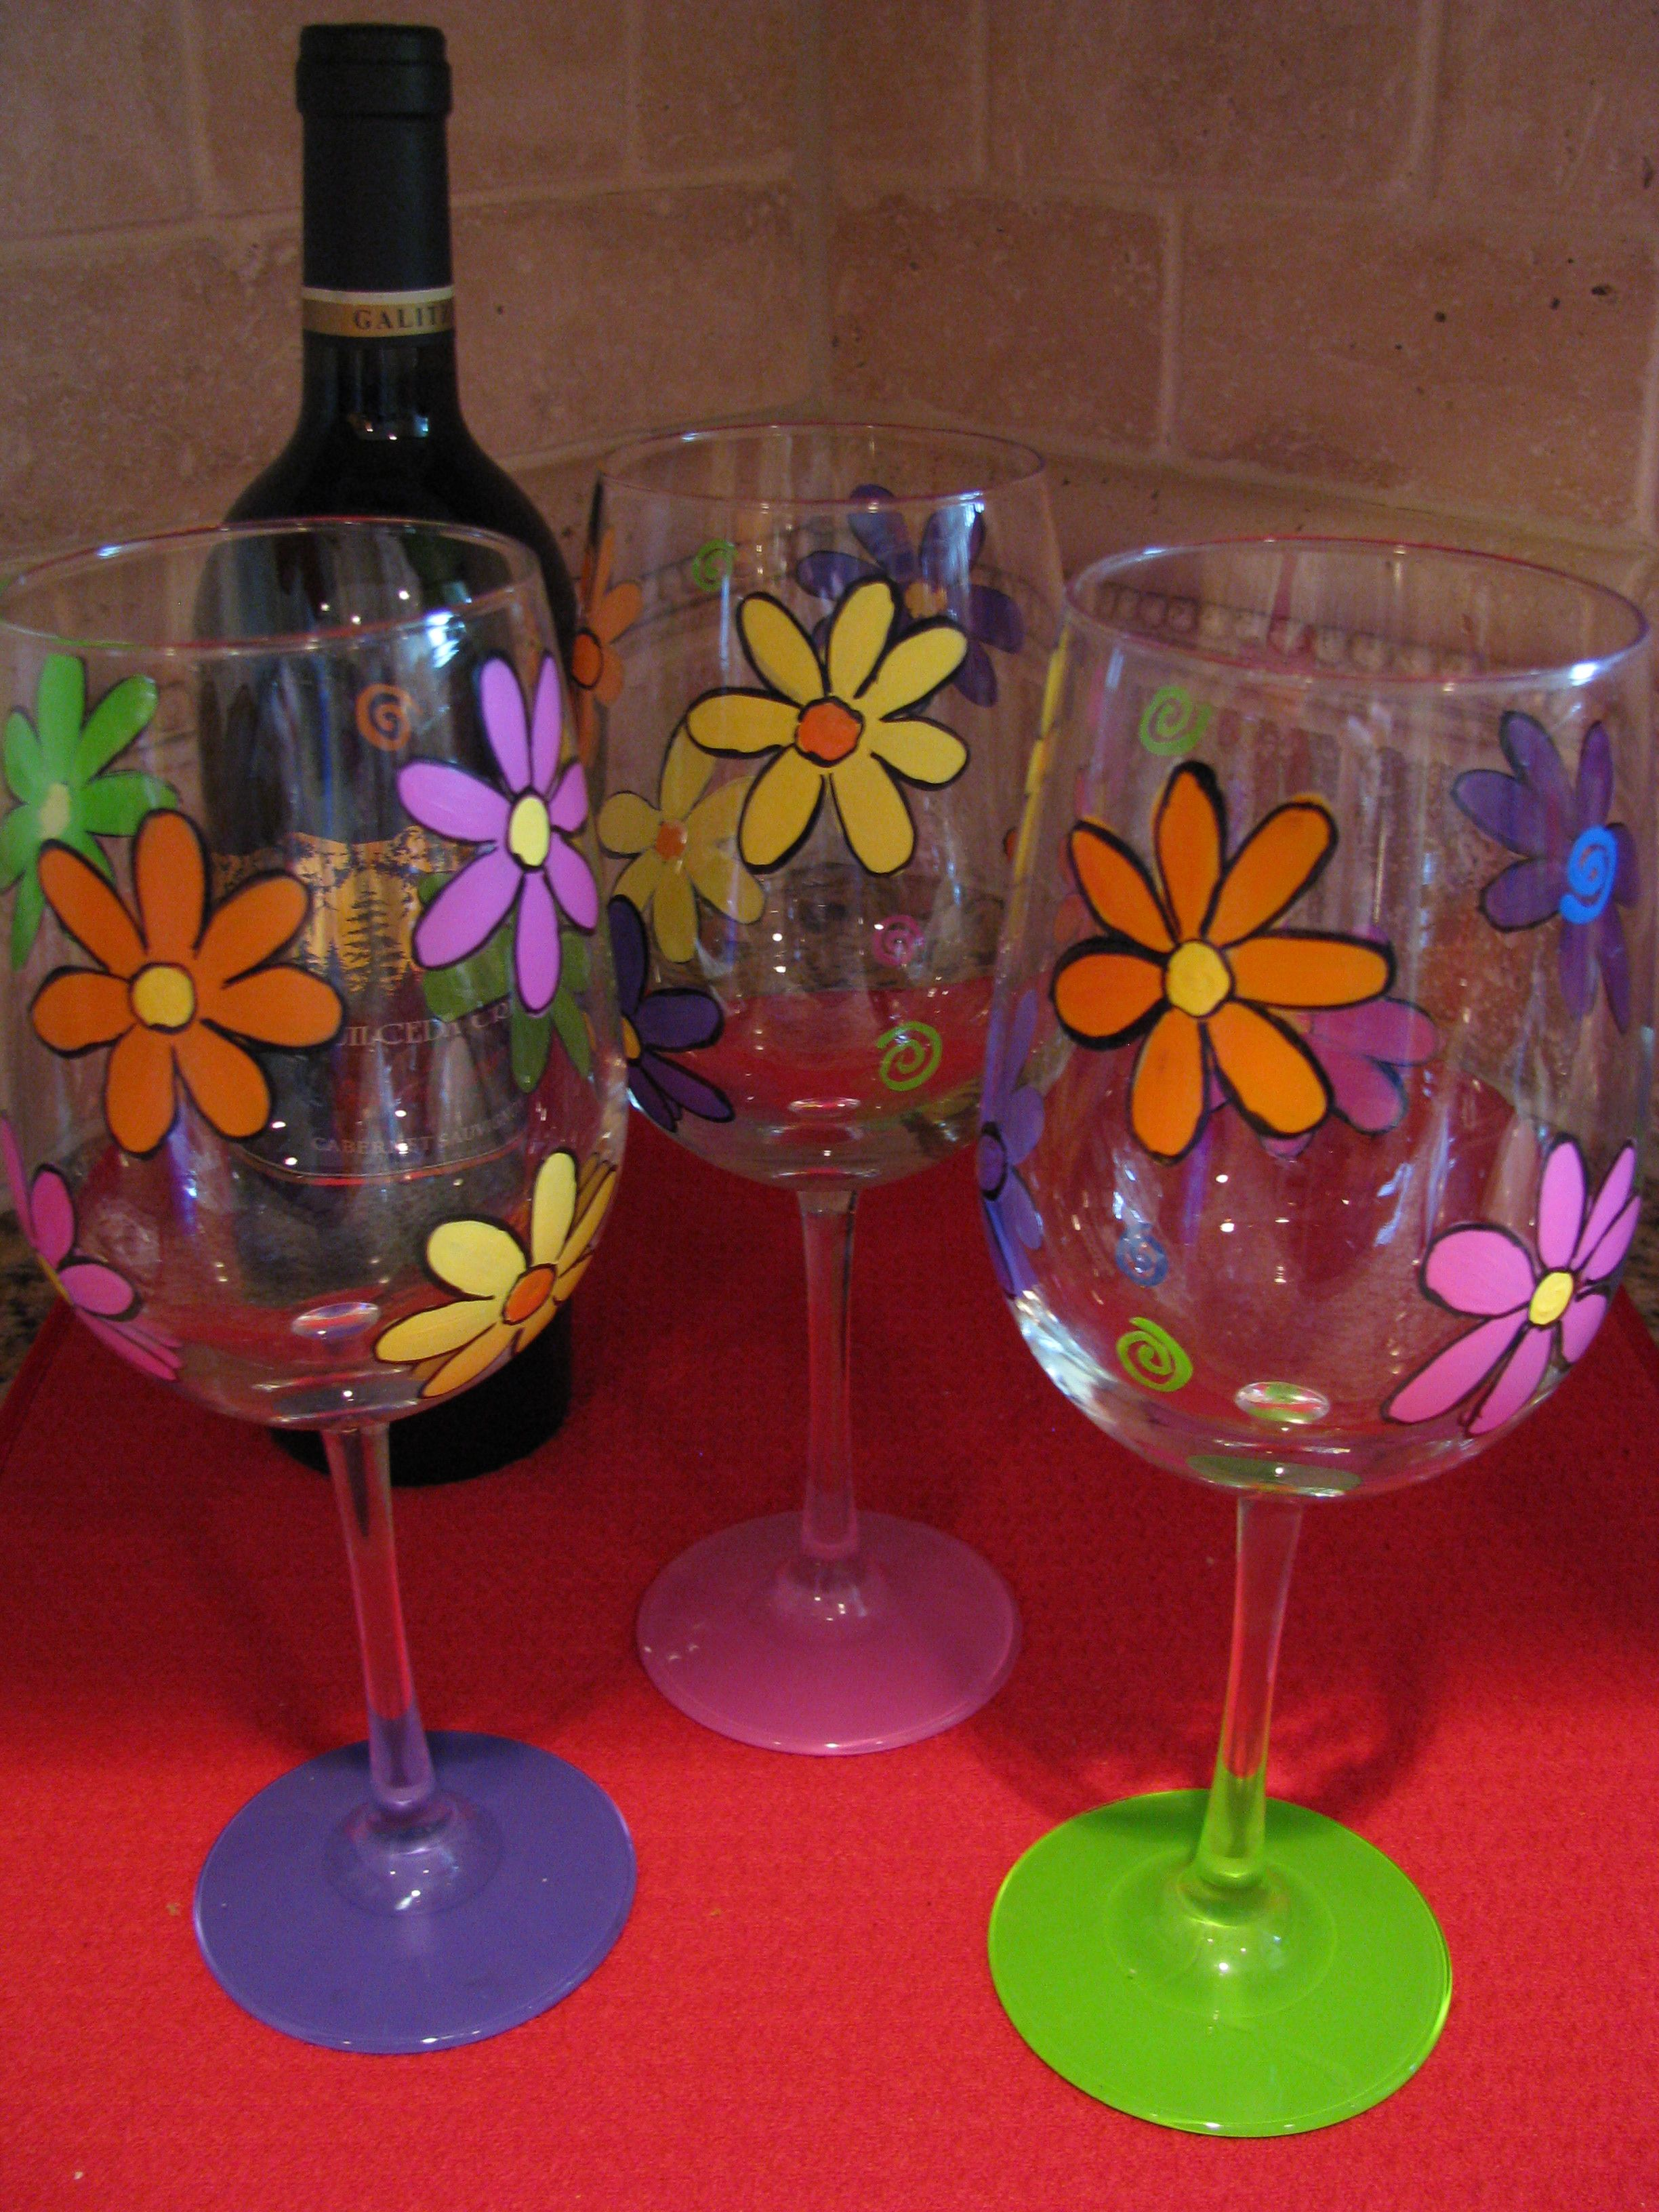 Pin By Ana Pachamama On My Painted Projects Diy Wine Glasses Painted Wine Glass Designs Wine Glass Crafts